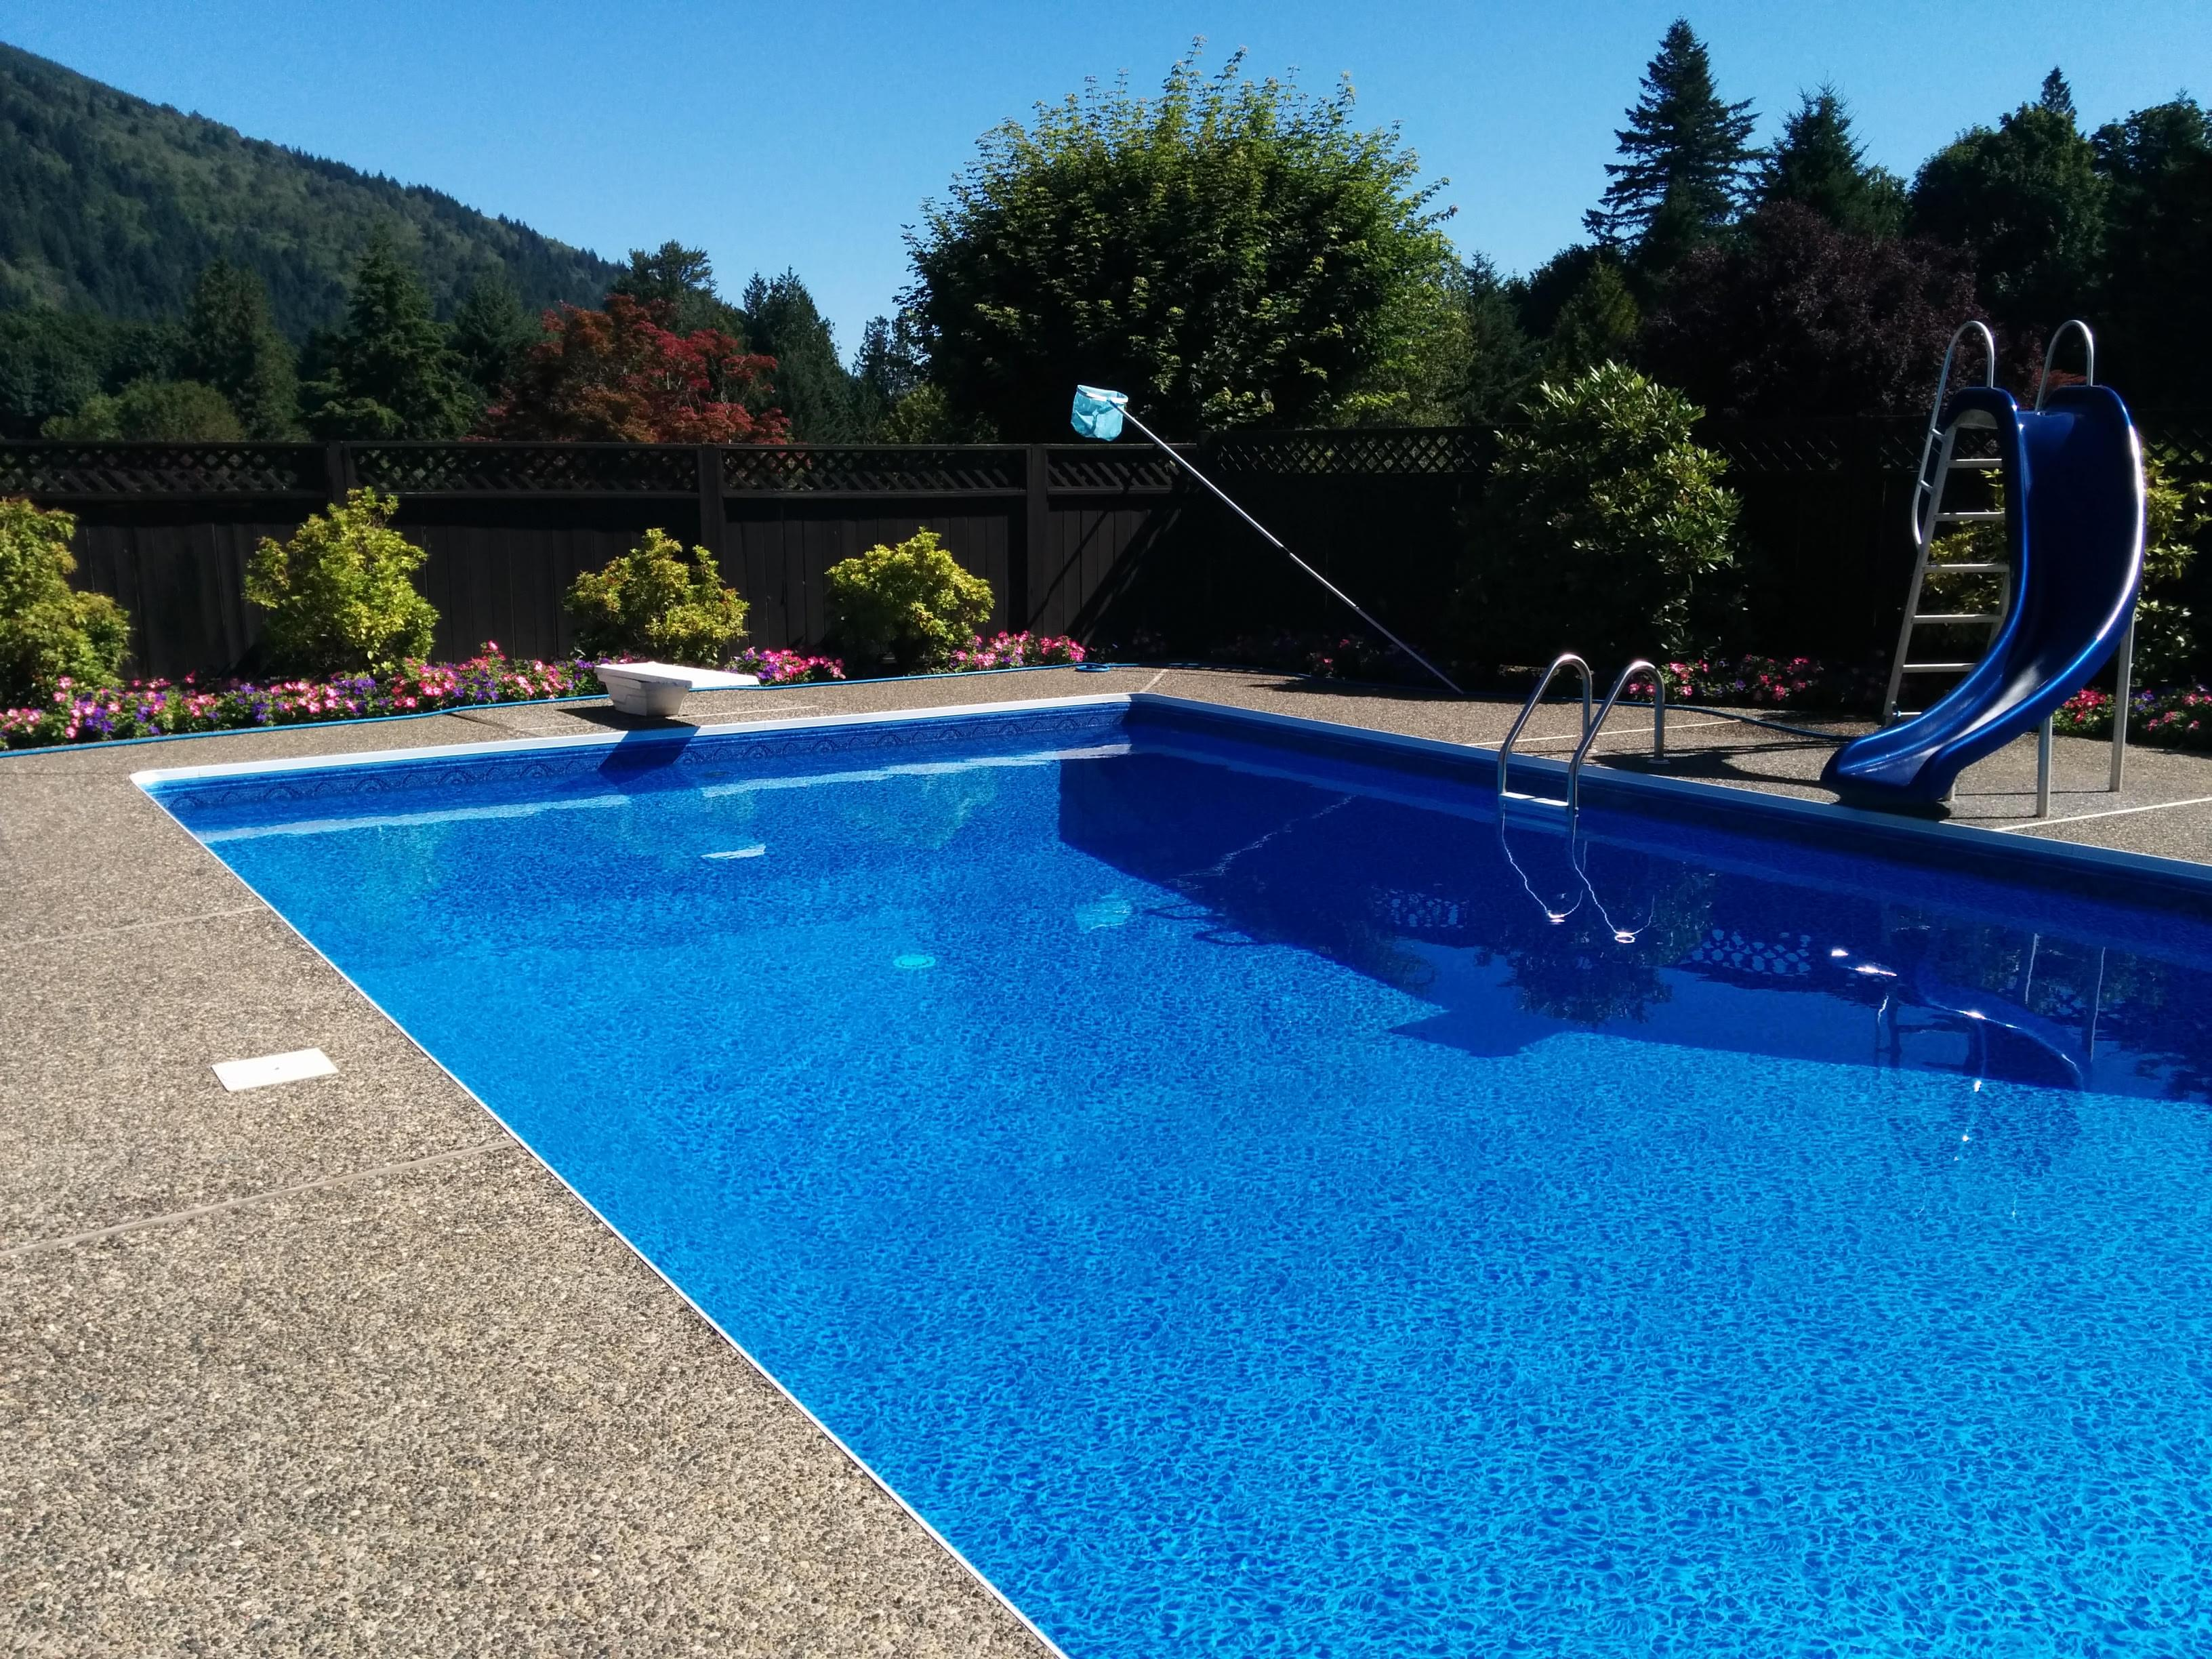 Inground pools pool supplies canada for On ground pools